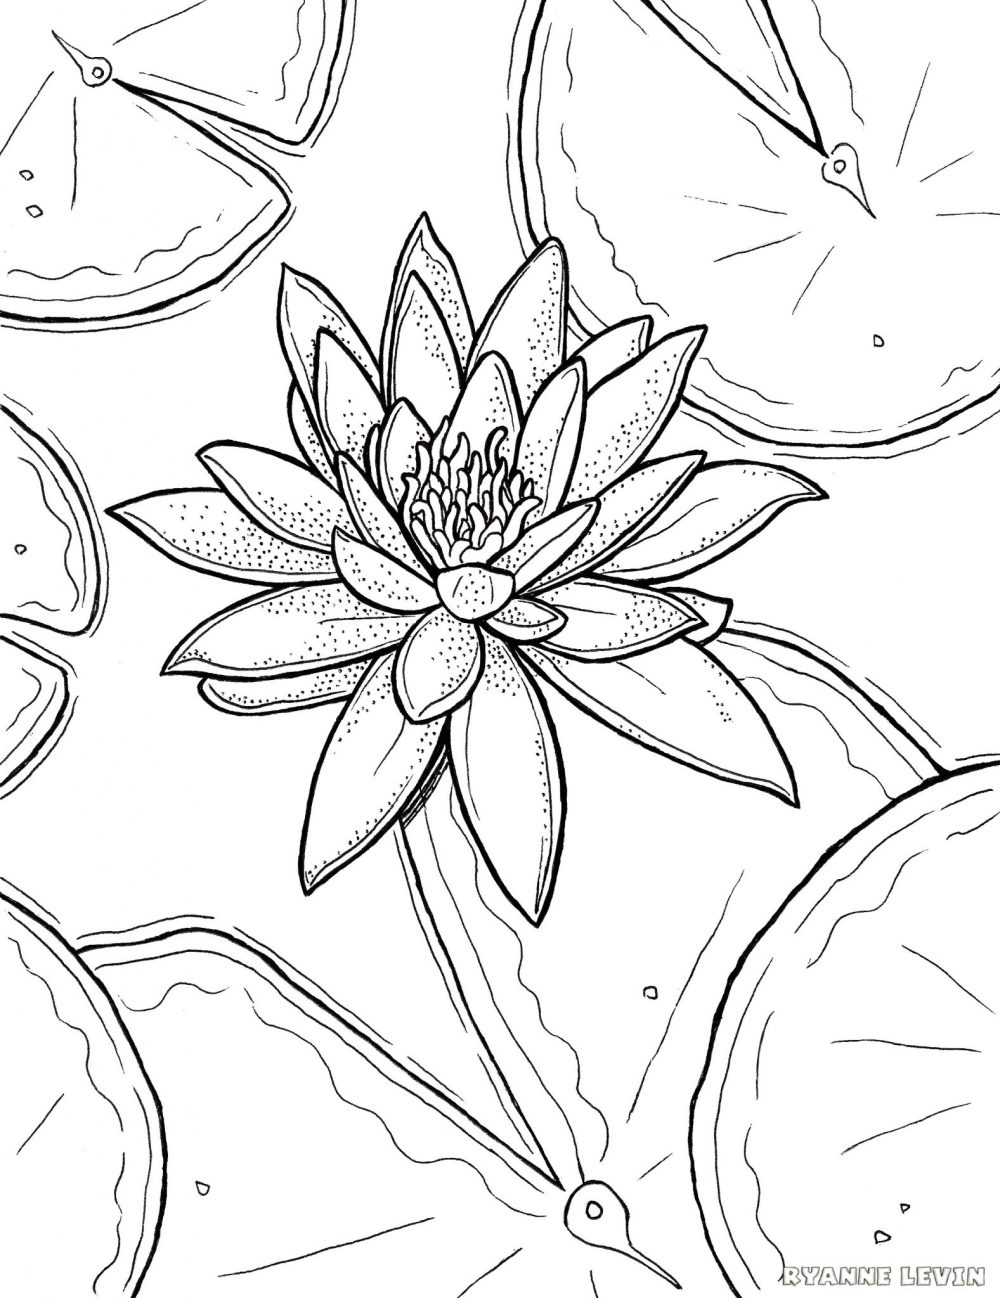 medium resolution of free printable water lily coloring page download u2013 ryanne levinfree printable water lily coloring page